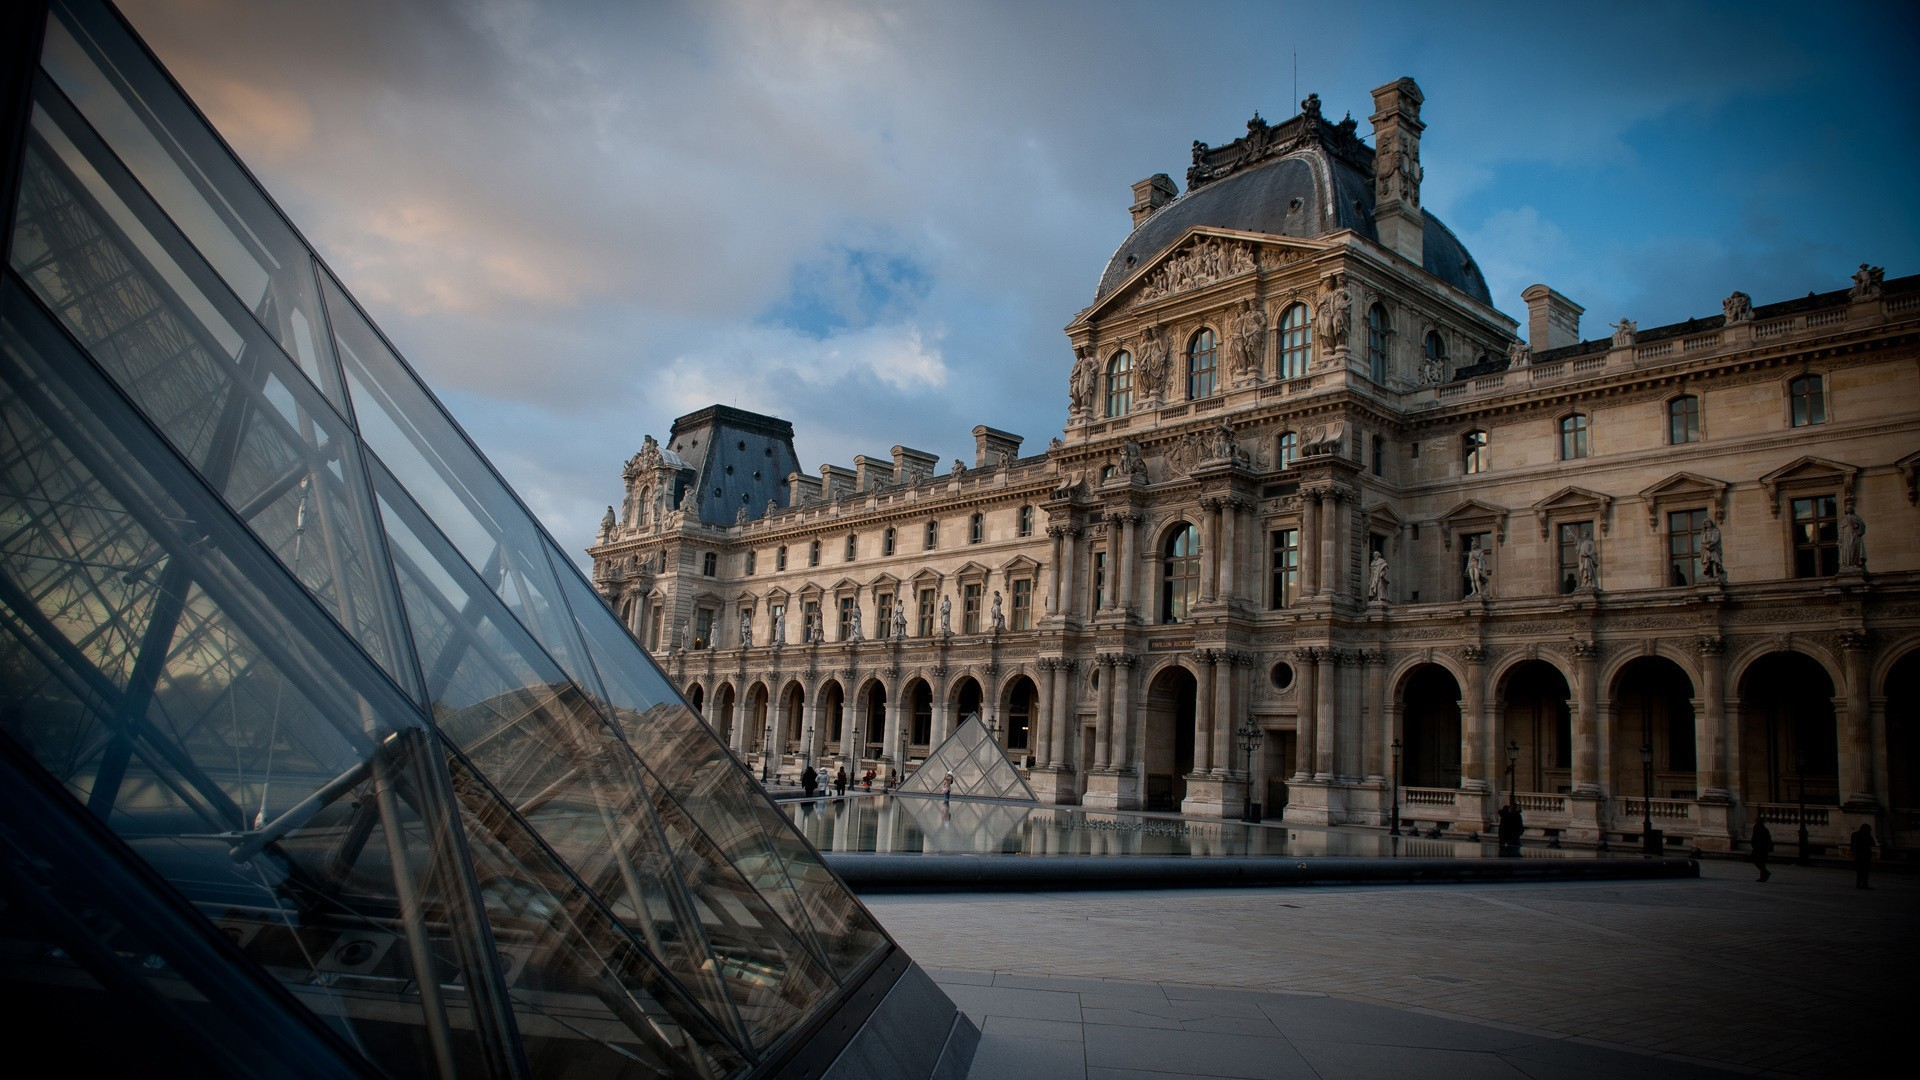 Hd 3d Wallpaper For Laptop Free Download Building Paris The Louvre Wallpapers Hd Desktop And